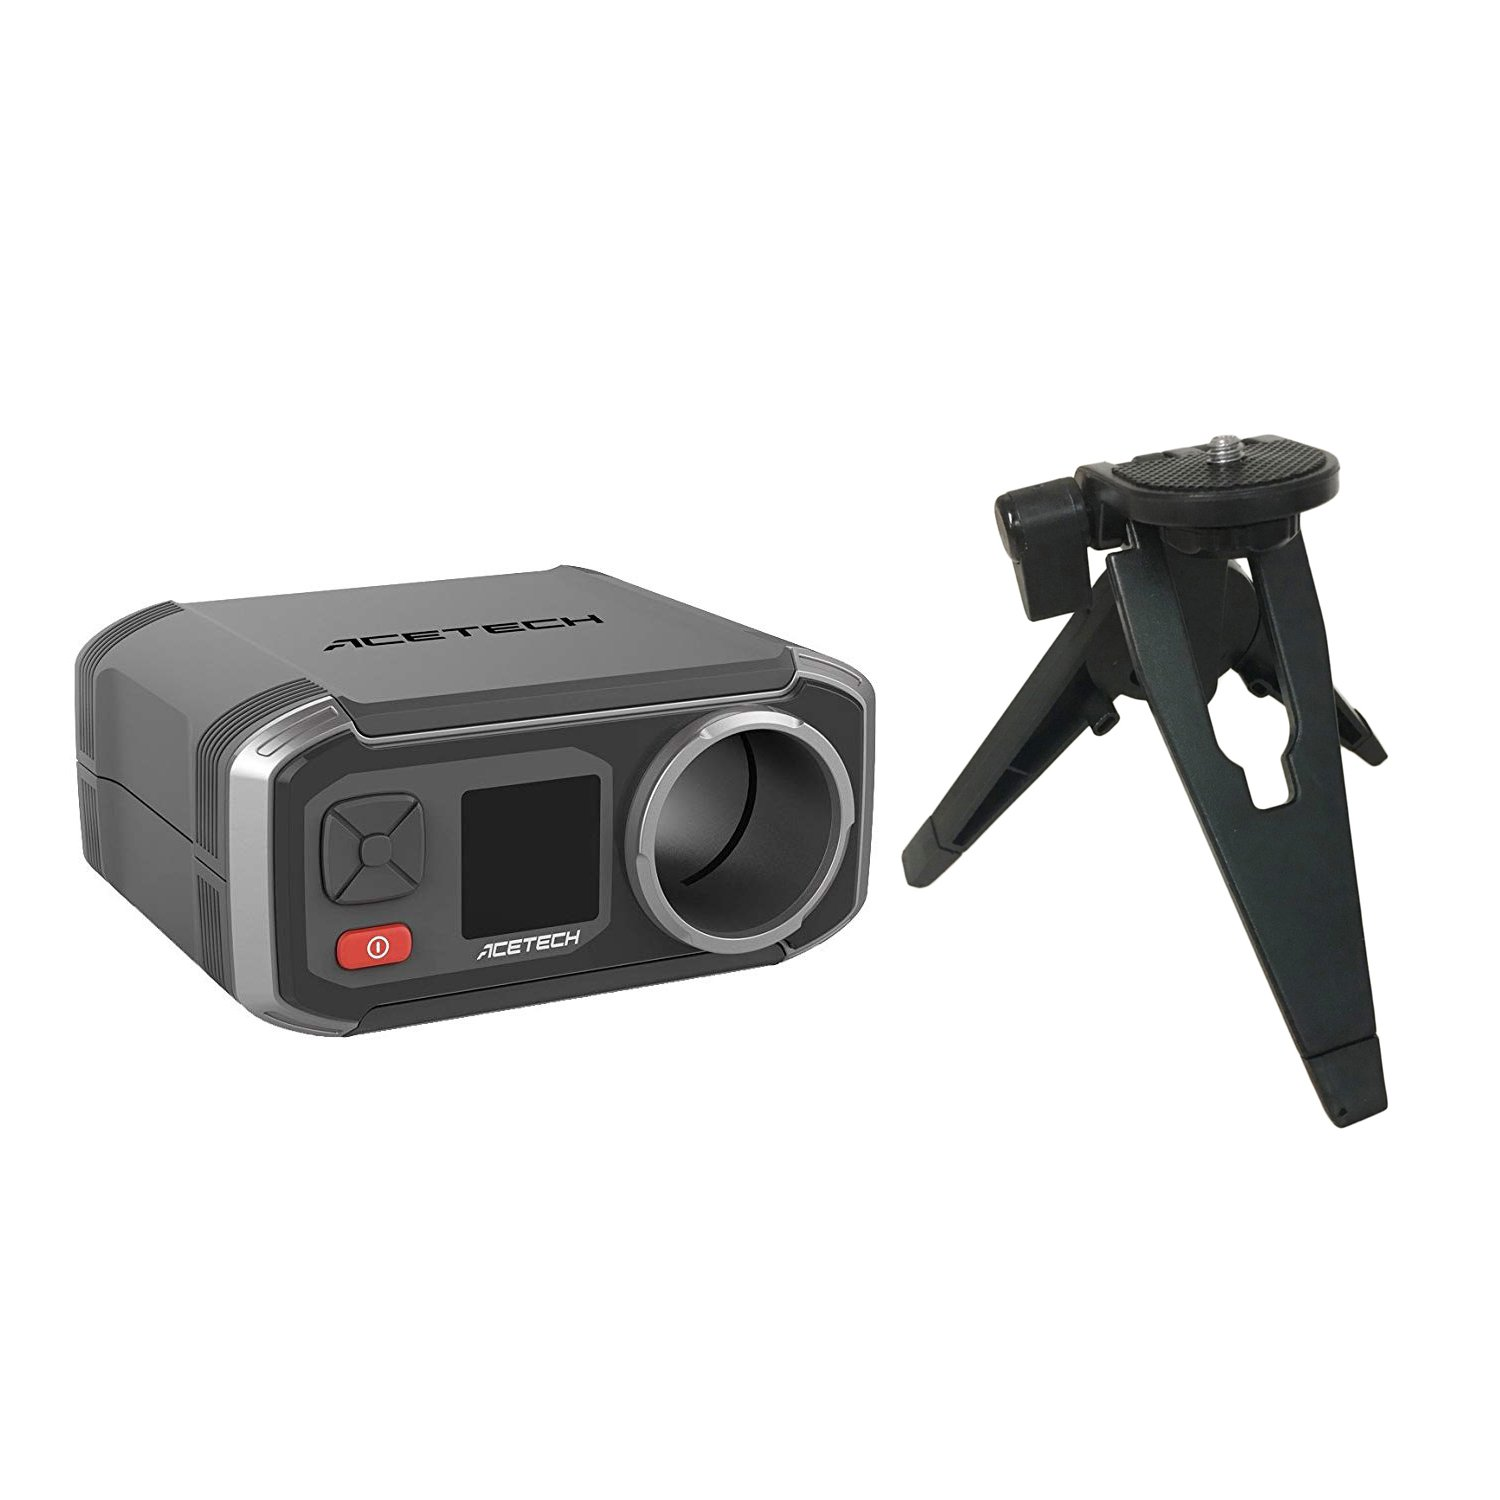 Basicest Acetech AC6000 Airsoft Shooting Chronograph with a Tripod